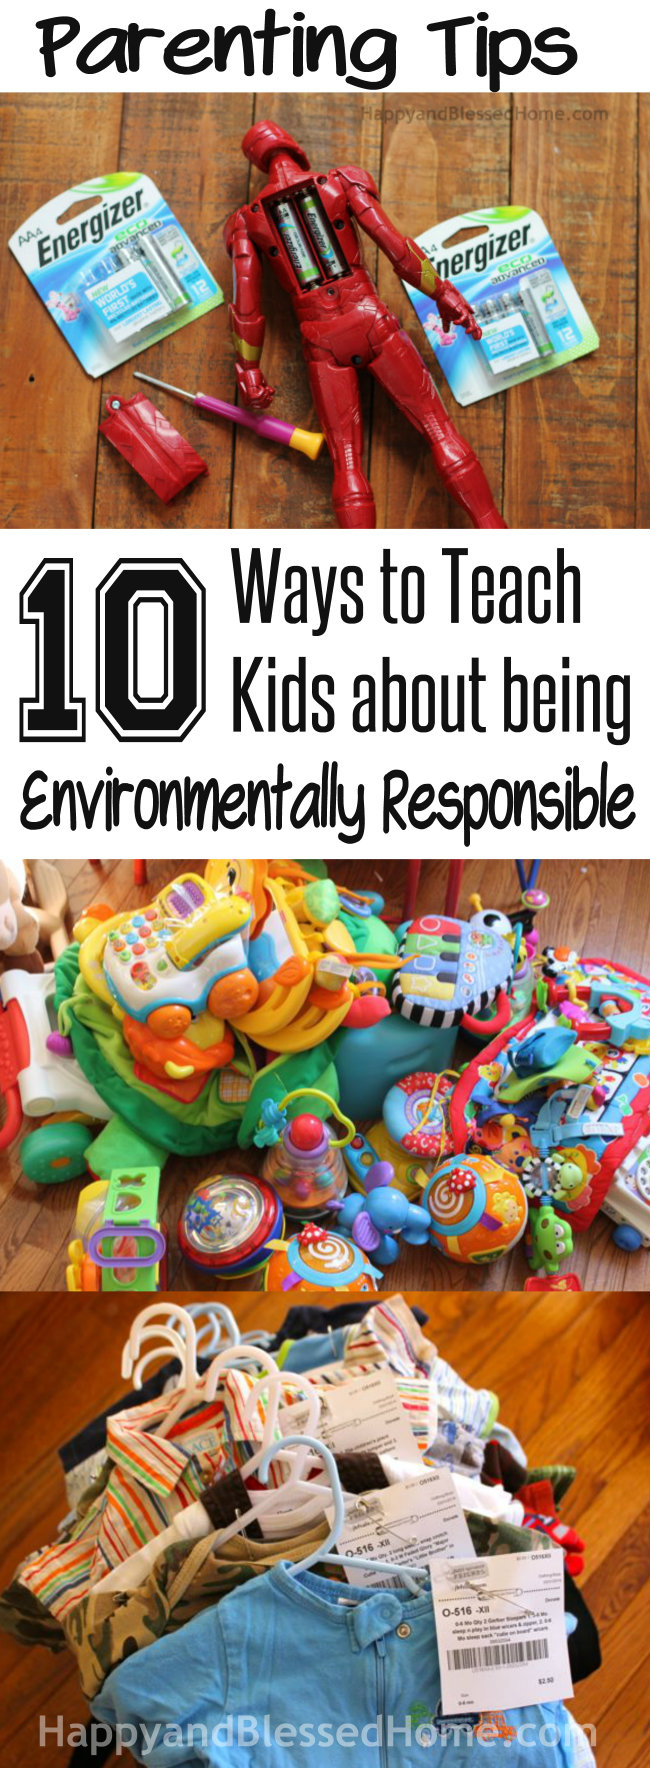 Parenting Tips Environmentally Responsible from HappyandBlessedHome.com